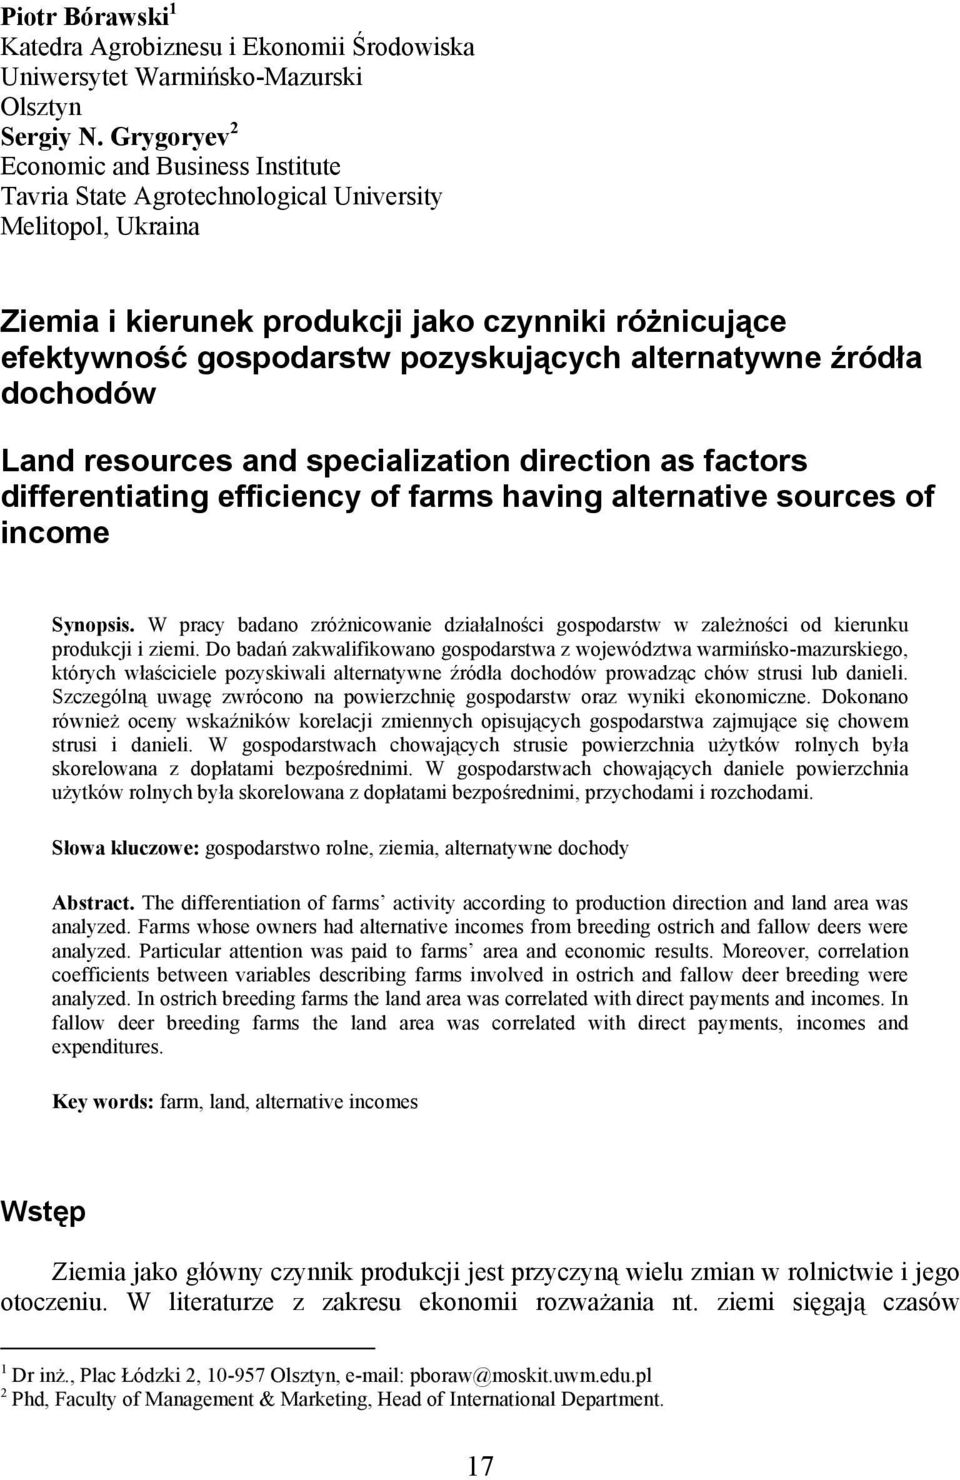 alternatywne źródła dochodów Land resources and specialization direction as factors differentiating efficiency of farms having alternative sources of income Synopsis.